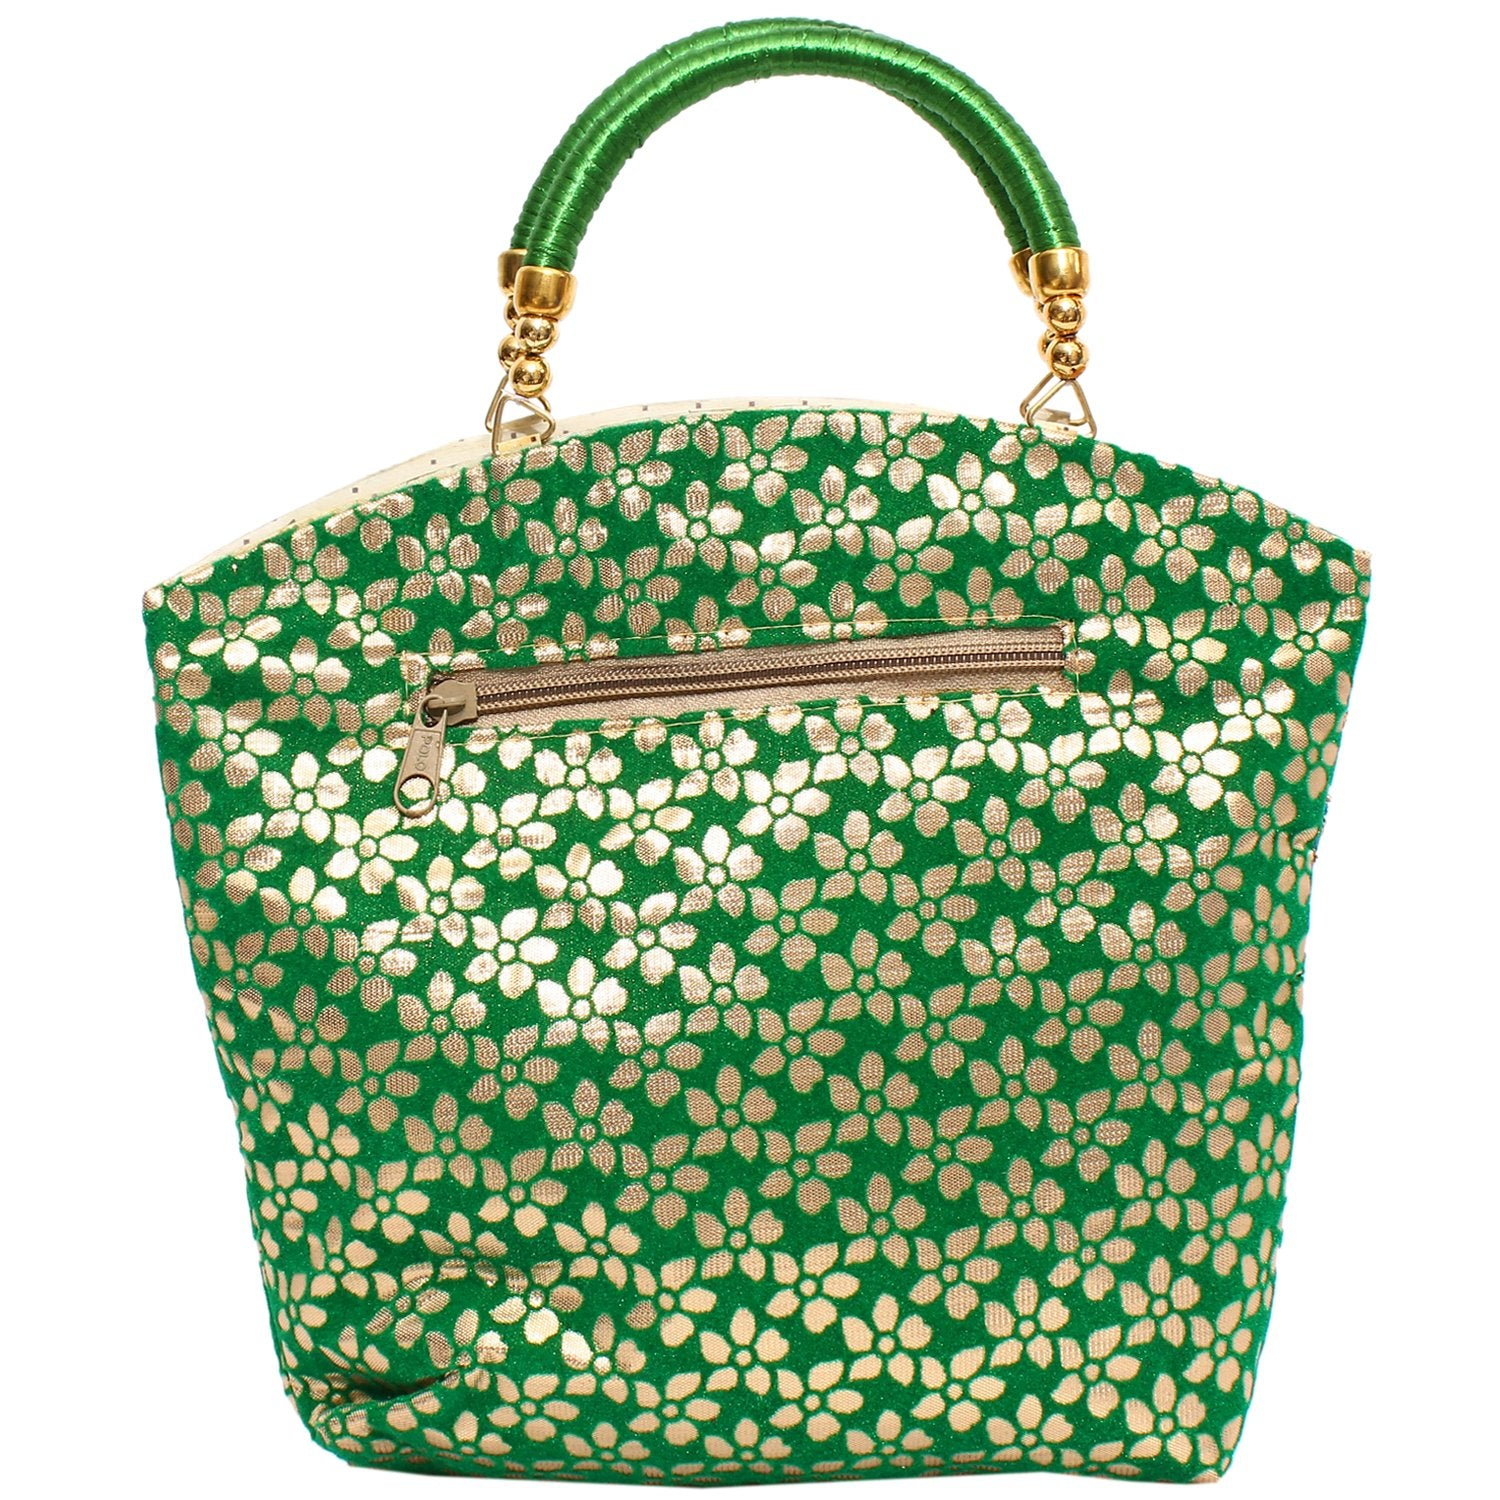 Raw silk Ethnic Handbag (Green) - Bagaholics Gift